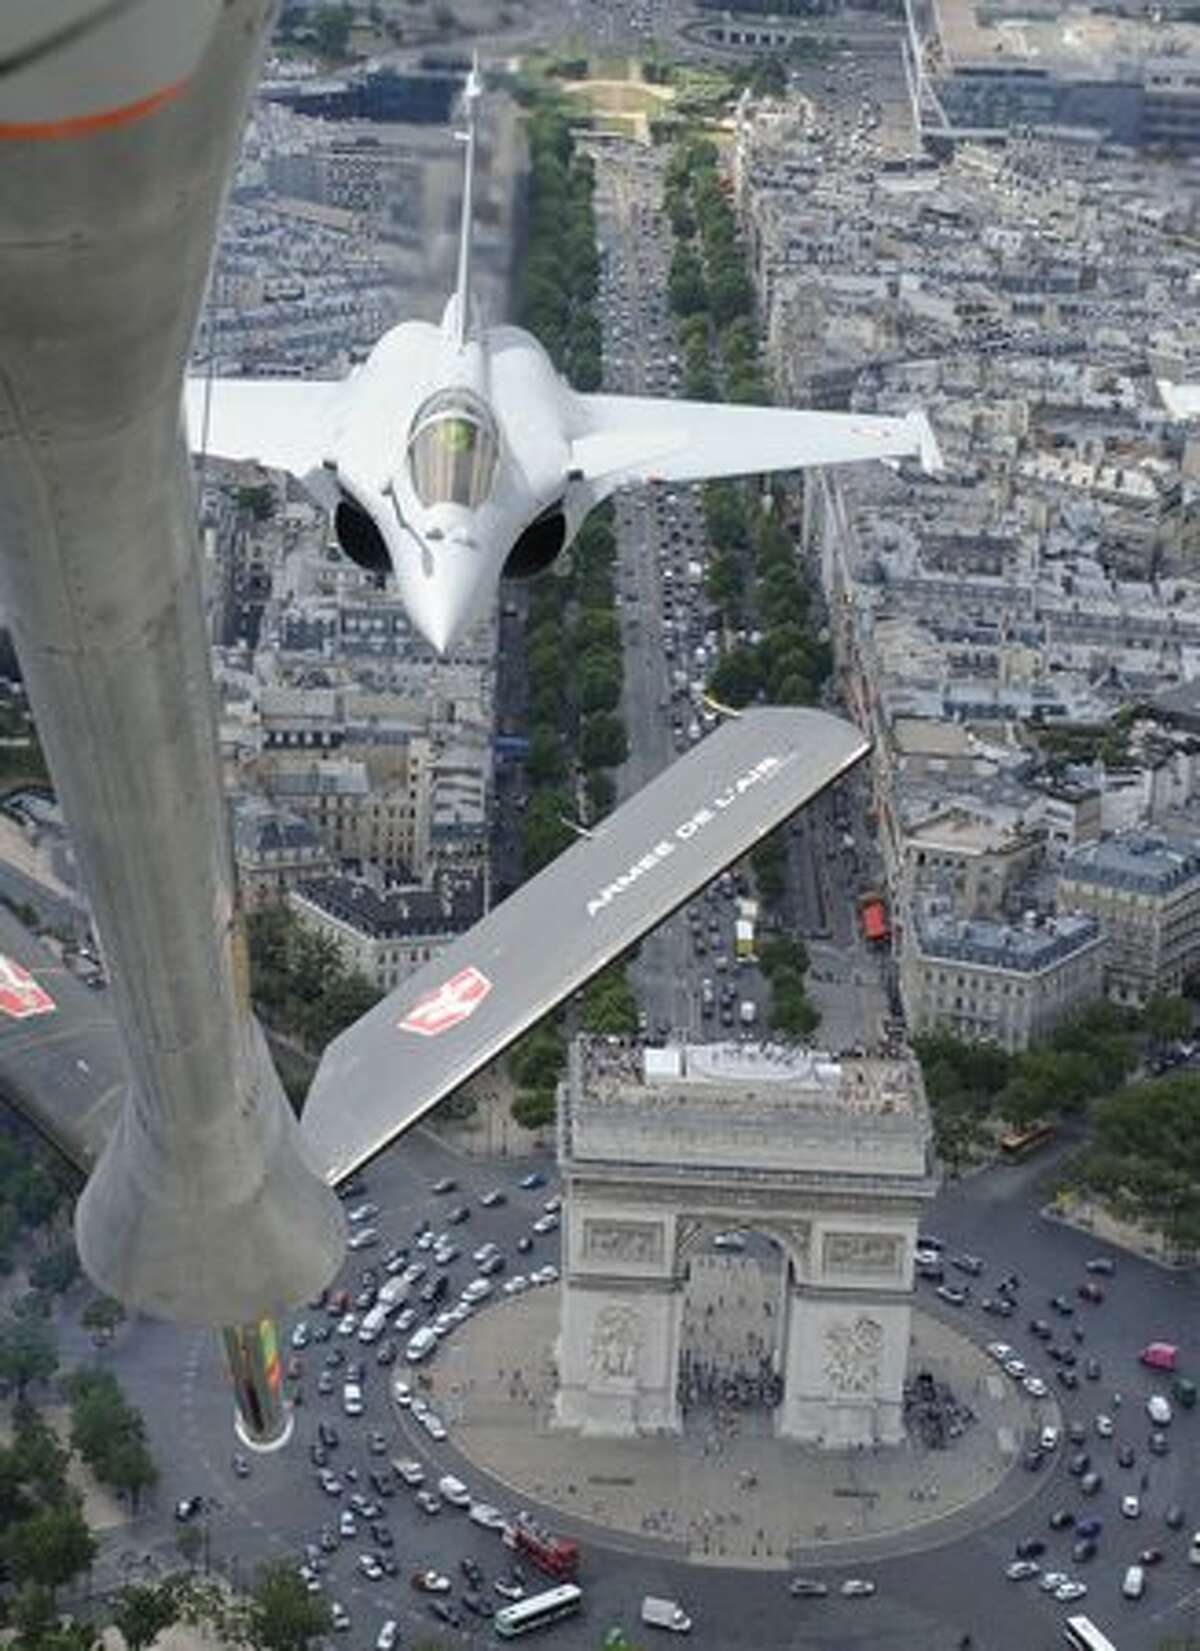 A photo taken from a French refueling tanker shows French Rafale jet fighters during a training session above the Arc of Triumph in Paris prior the July 14 Bastille Day military parade.